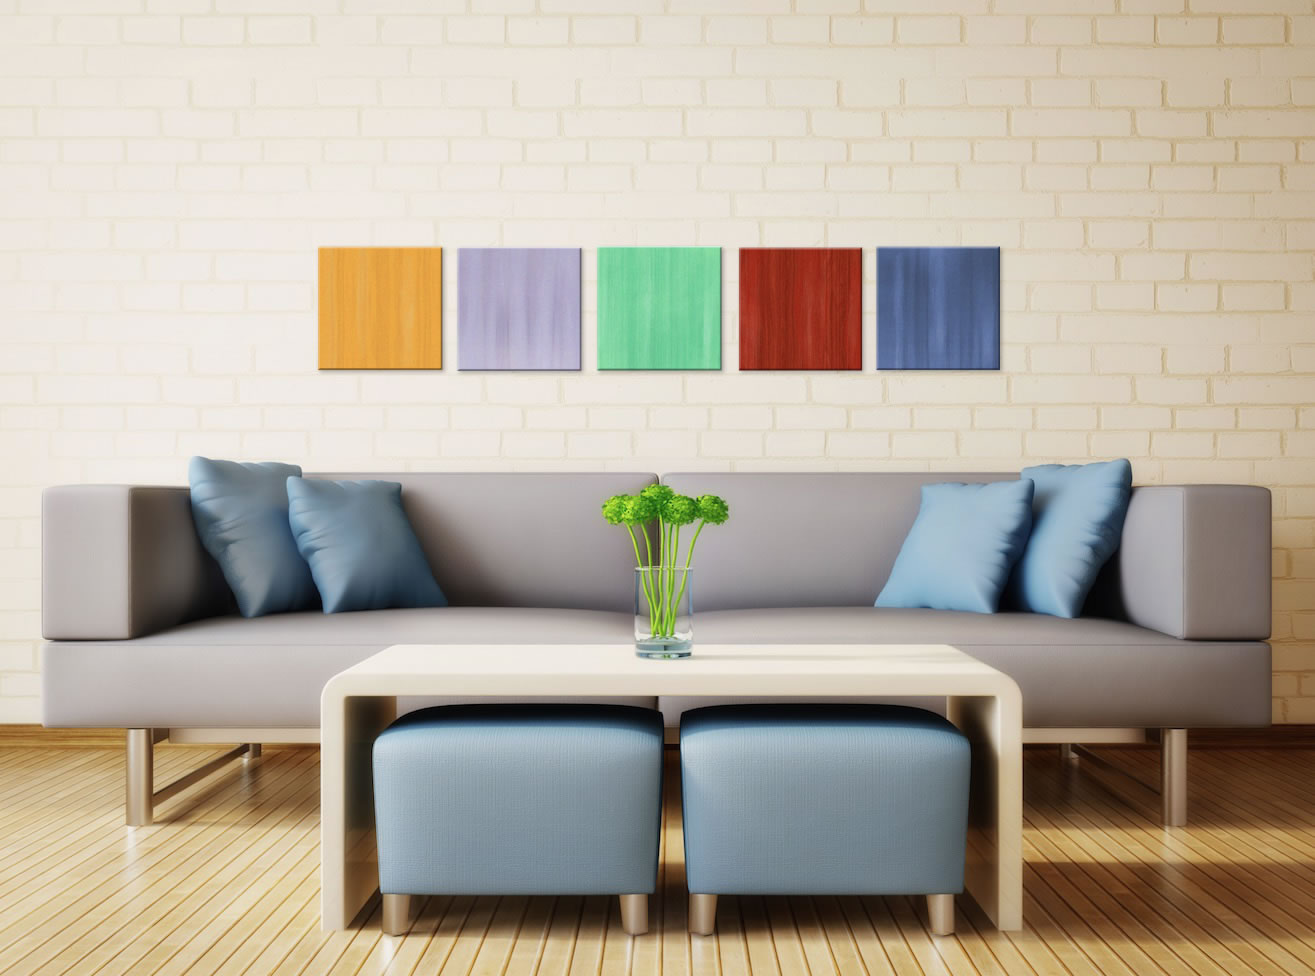 Spring - Colorful Contemporary Accents by Celeste Reiter - Lifestyle Image